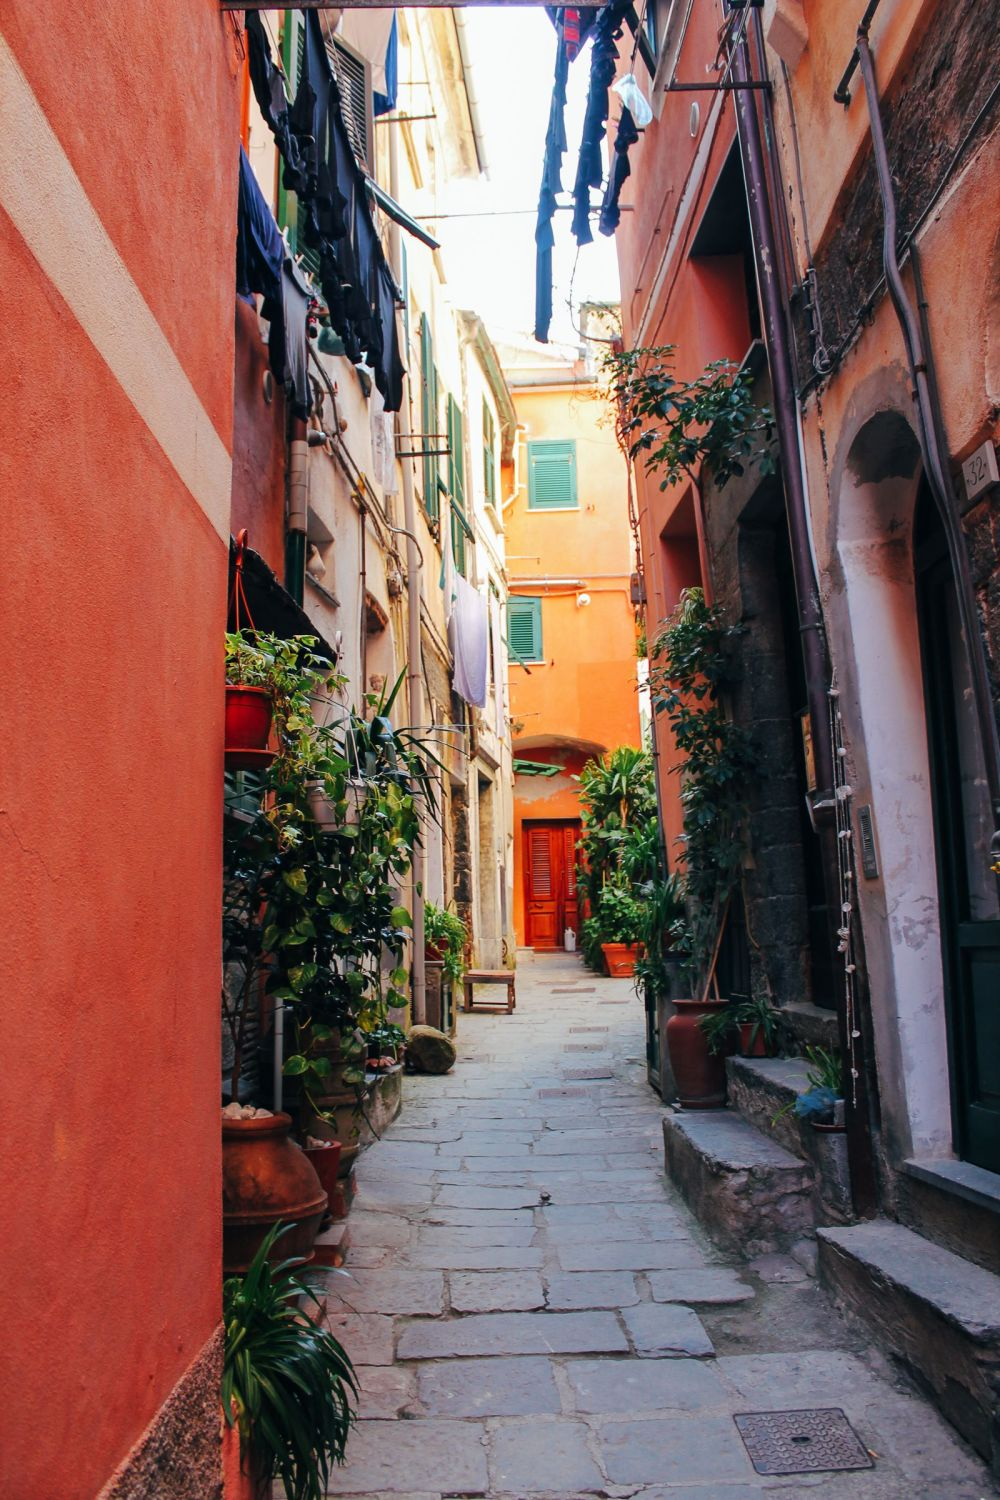 Vernazza in Cinque Terre, Italy - The Photo Diary! [4 of 5] (11)